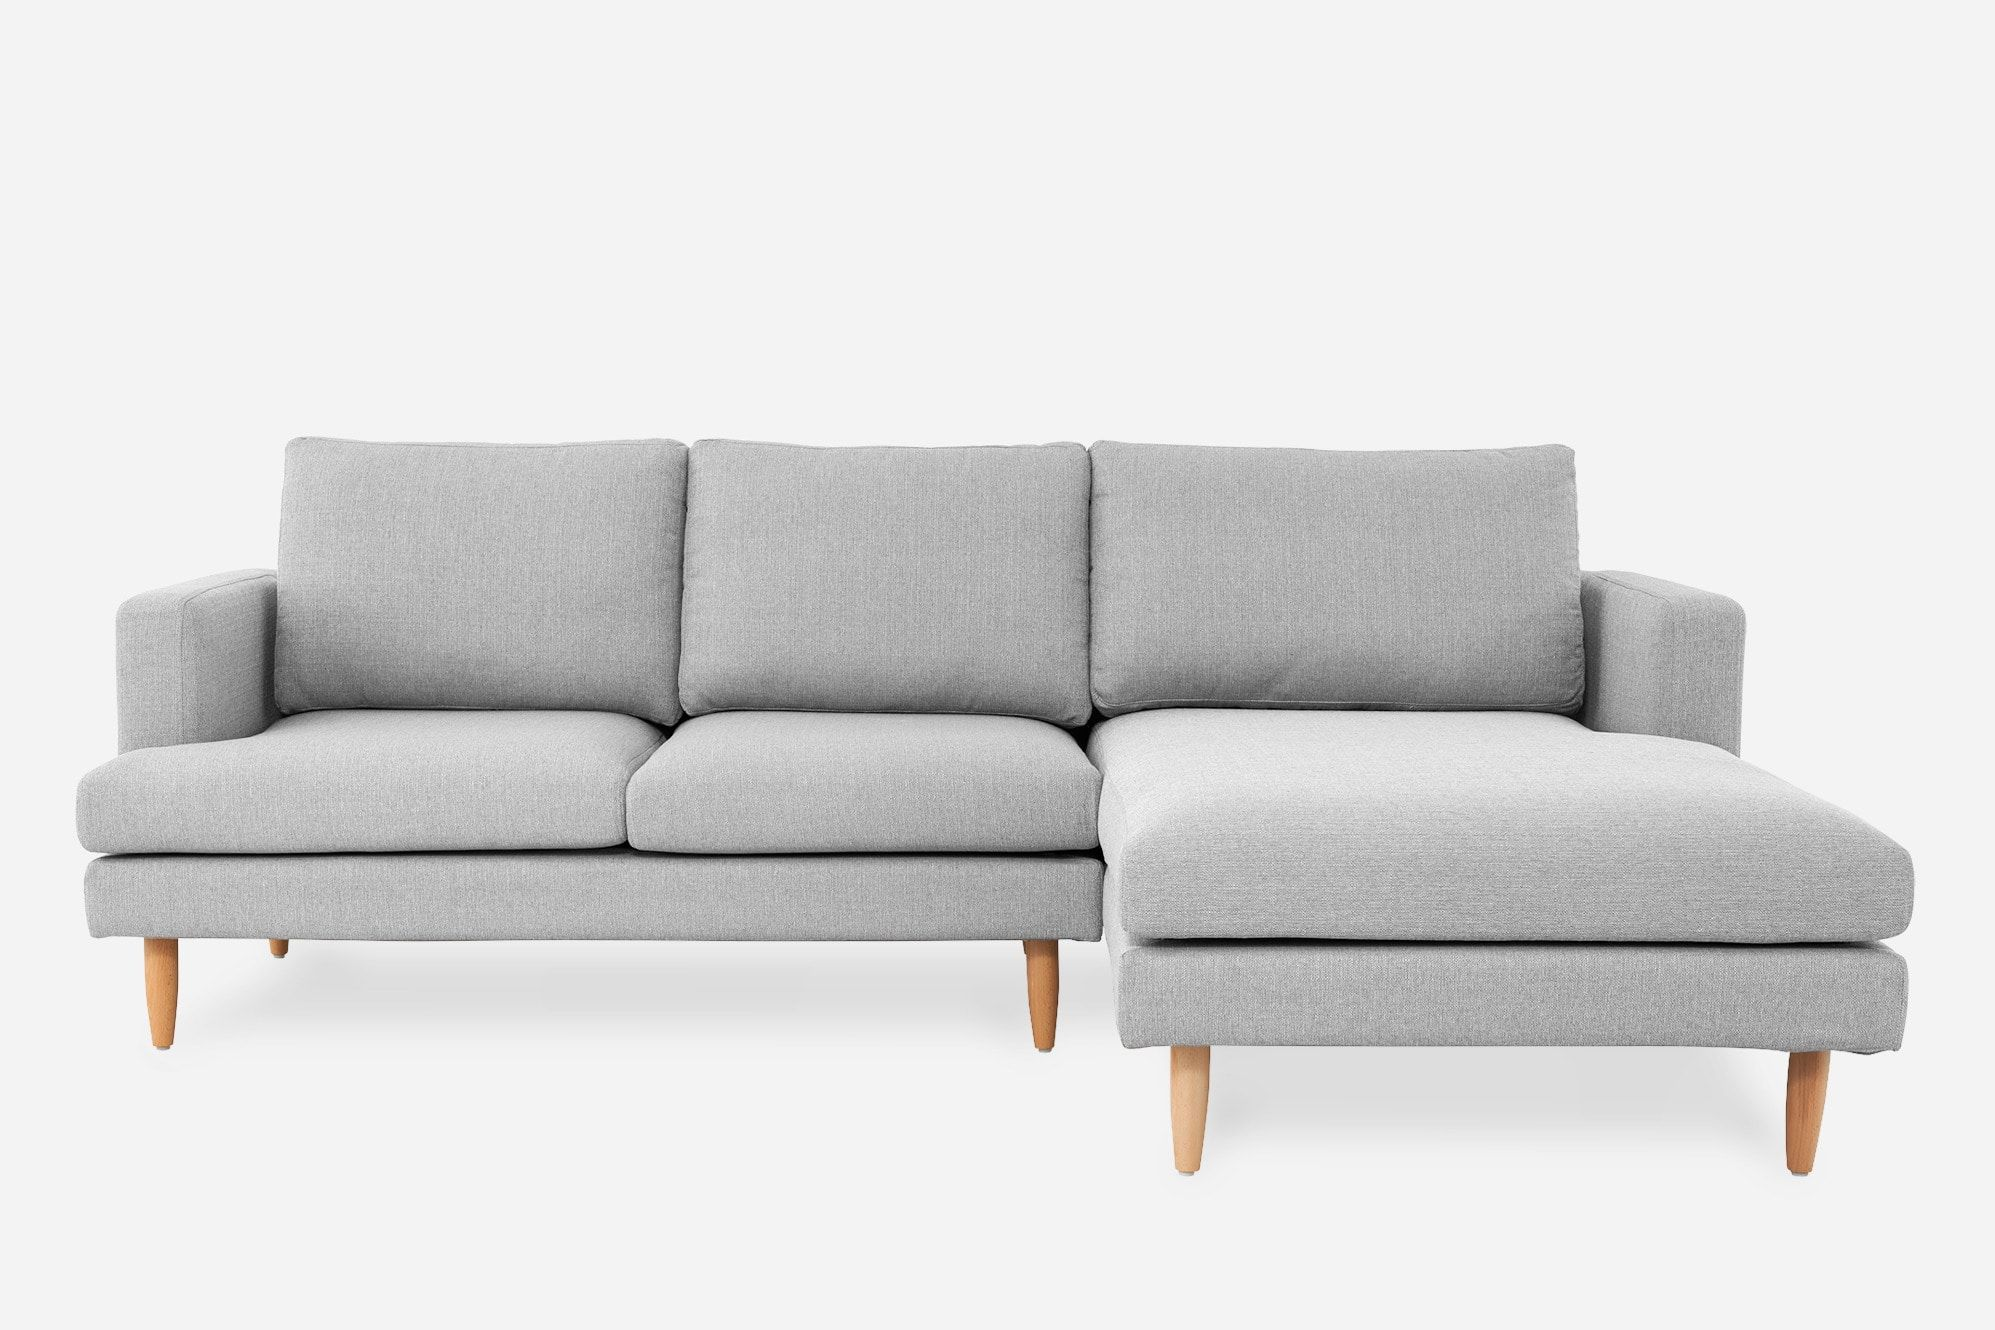 Tana Sectional Sofa In 2020 Sectional Sofa Sofa Buy Sofa